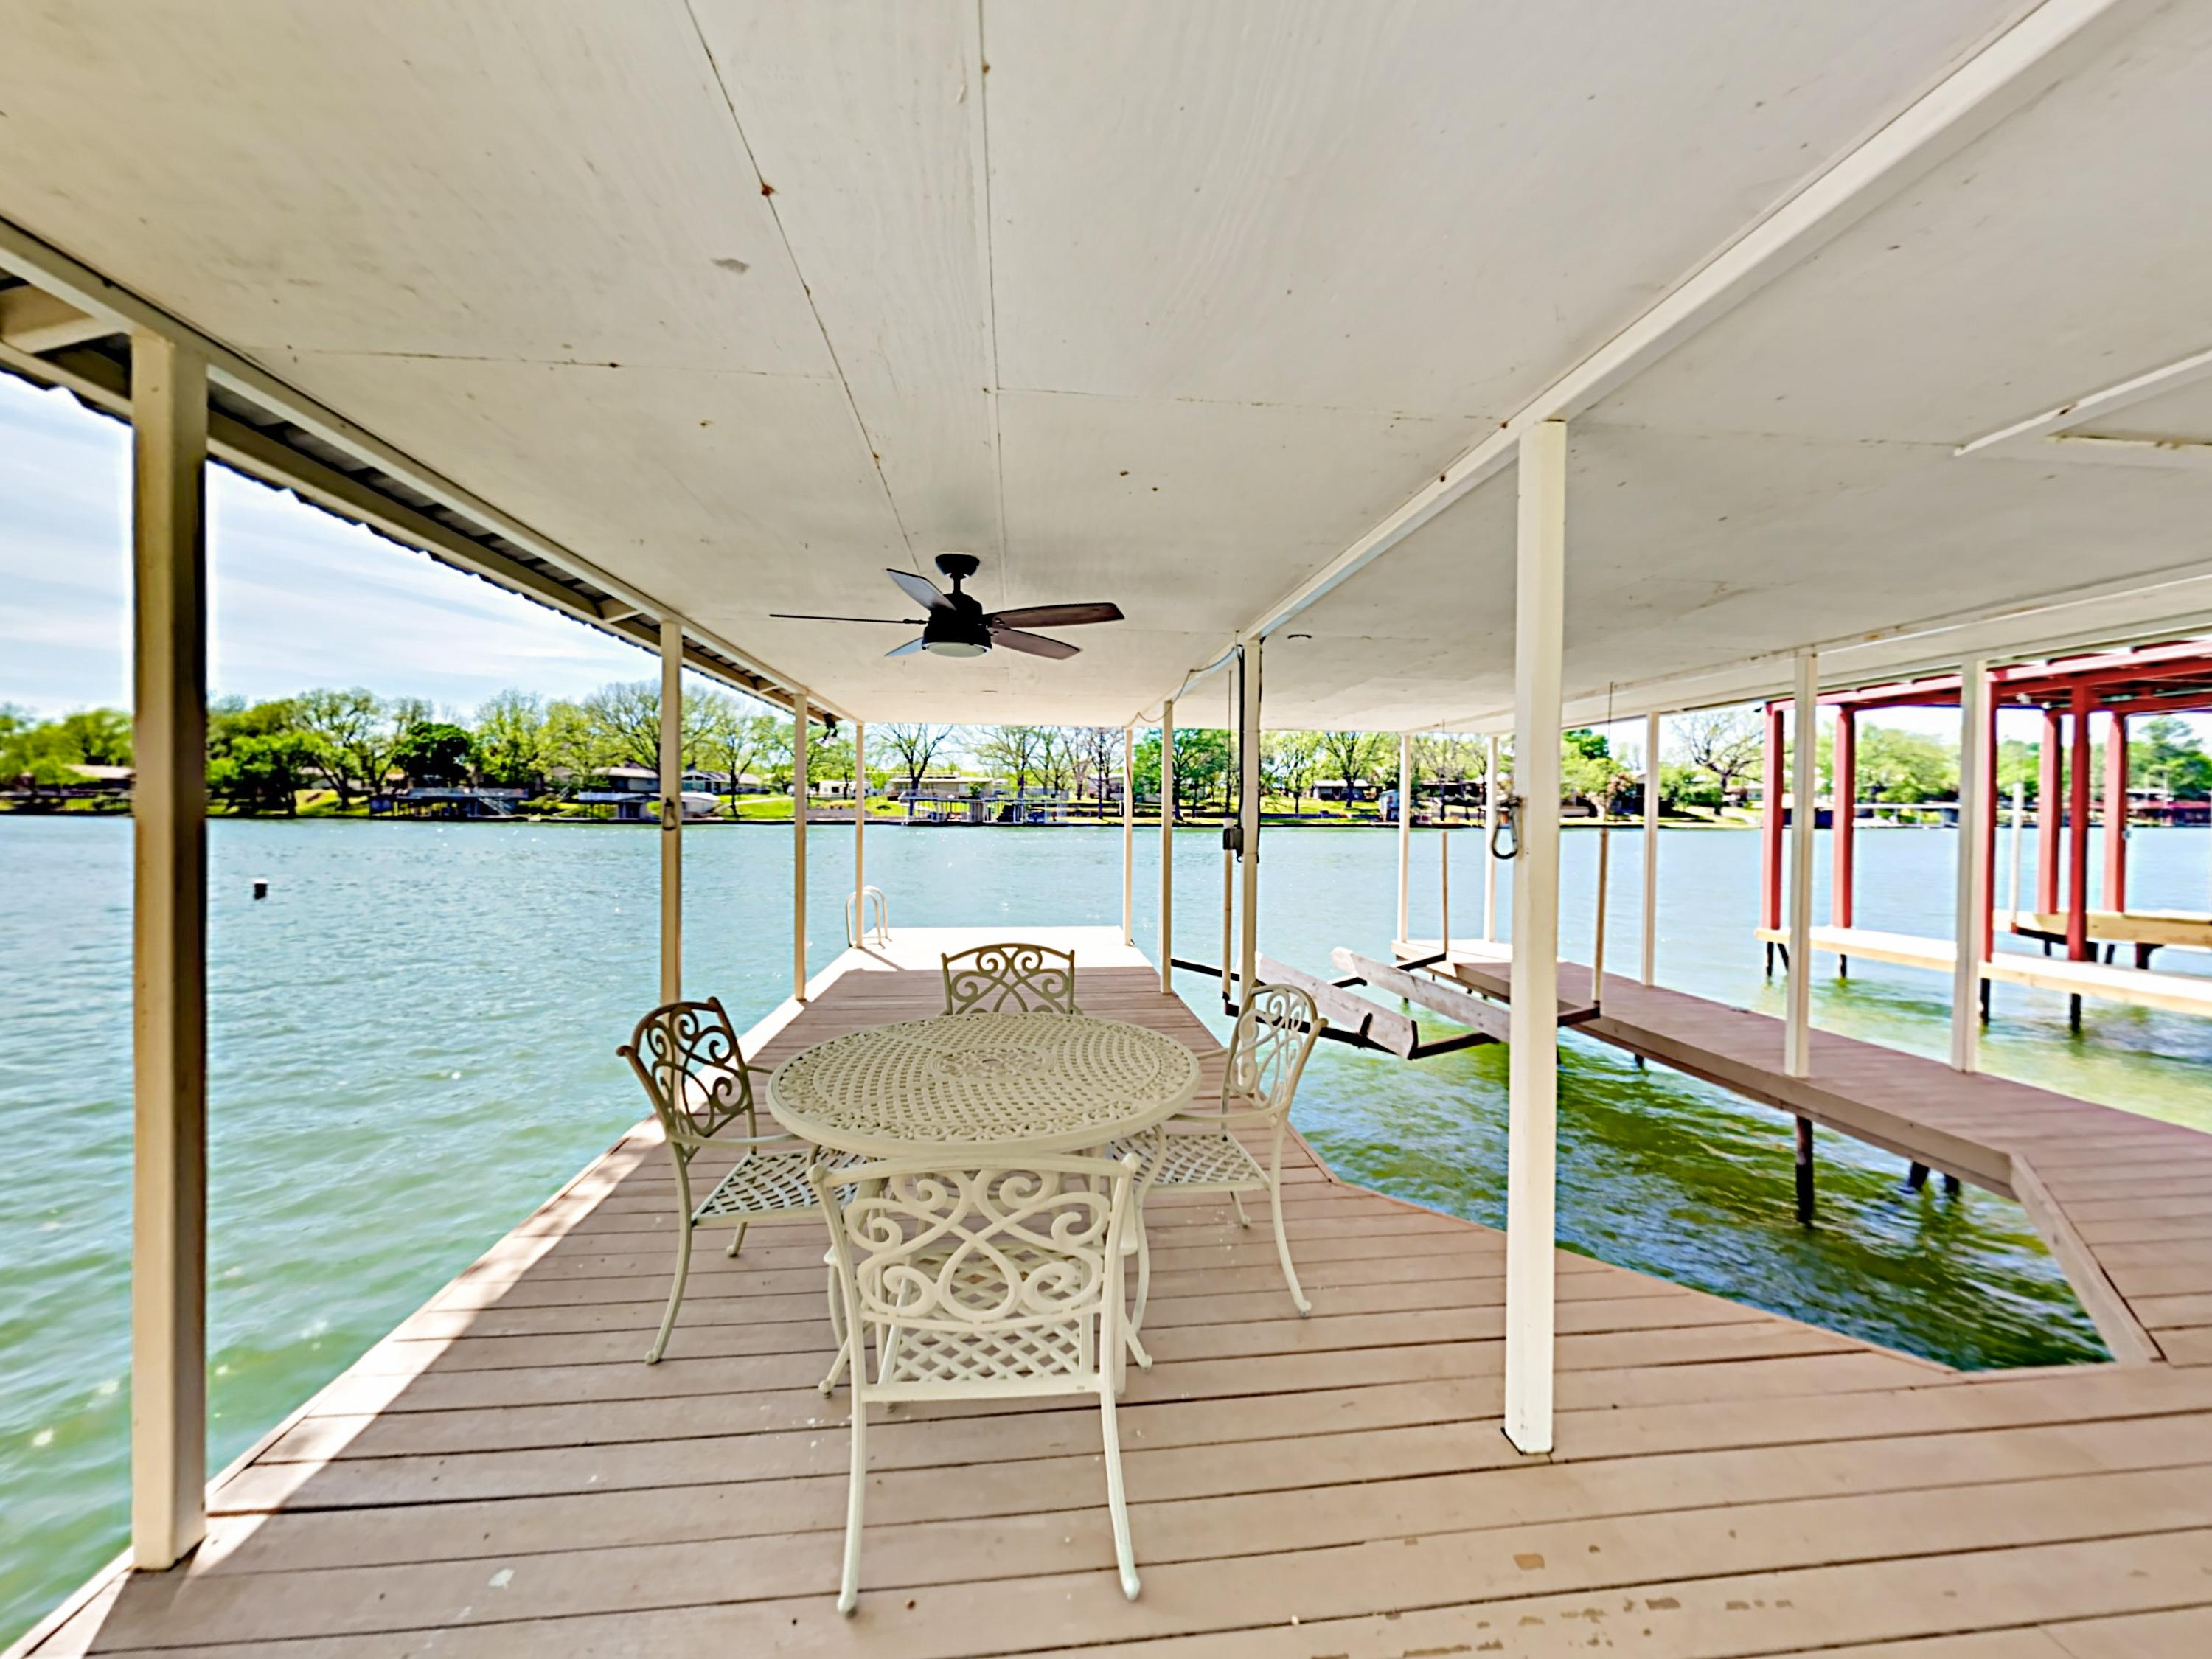 This rental includes a private covered boat dock, with seating for 4. (The boat slip and lift are not available for guest use.)